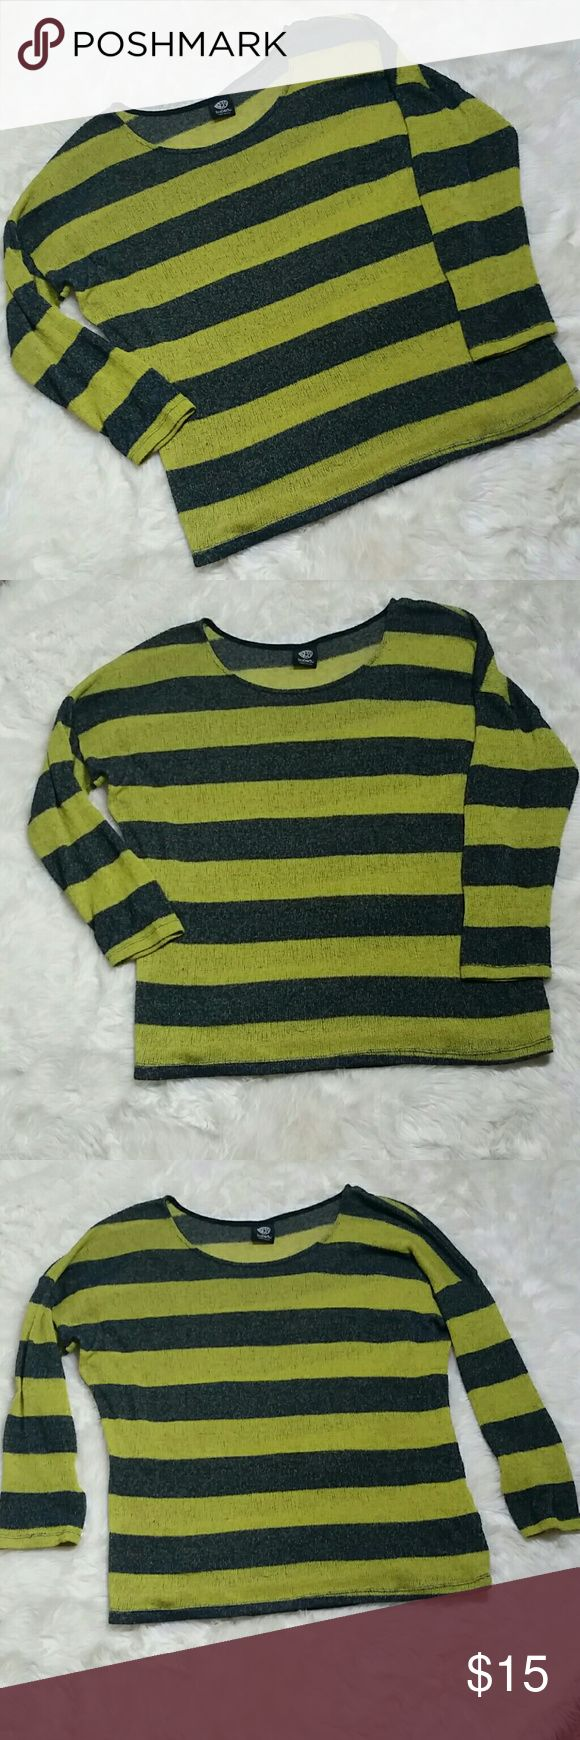 """Bobeau Striped Open Knit Sweater Size XL Bobeau Striped Open Knit Sweater Size XL. Moss with navy thick stripes. Oversized and boxy. Thin open knit. Requires an undershirt for full coverage. 68% polyester, 22% rayon, 5% flax & 5% spandex. Preowned in good condition with no rips, holes, tears or stains.  Pit to Pit 28"""" Top of shoulder to bottom hem 29"""" bobeau Sweaters"""